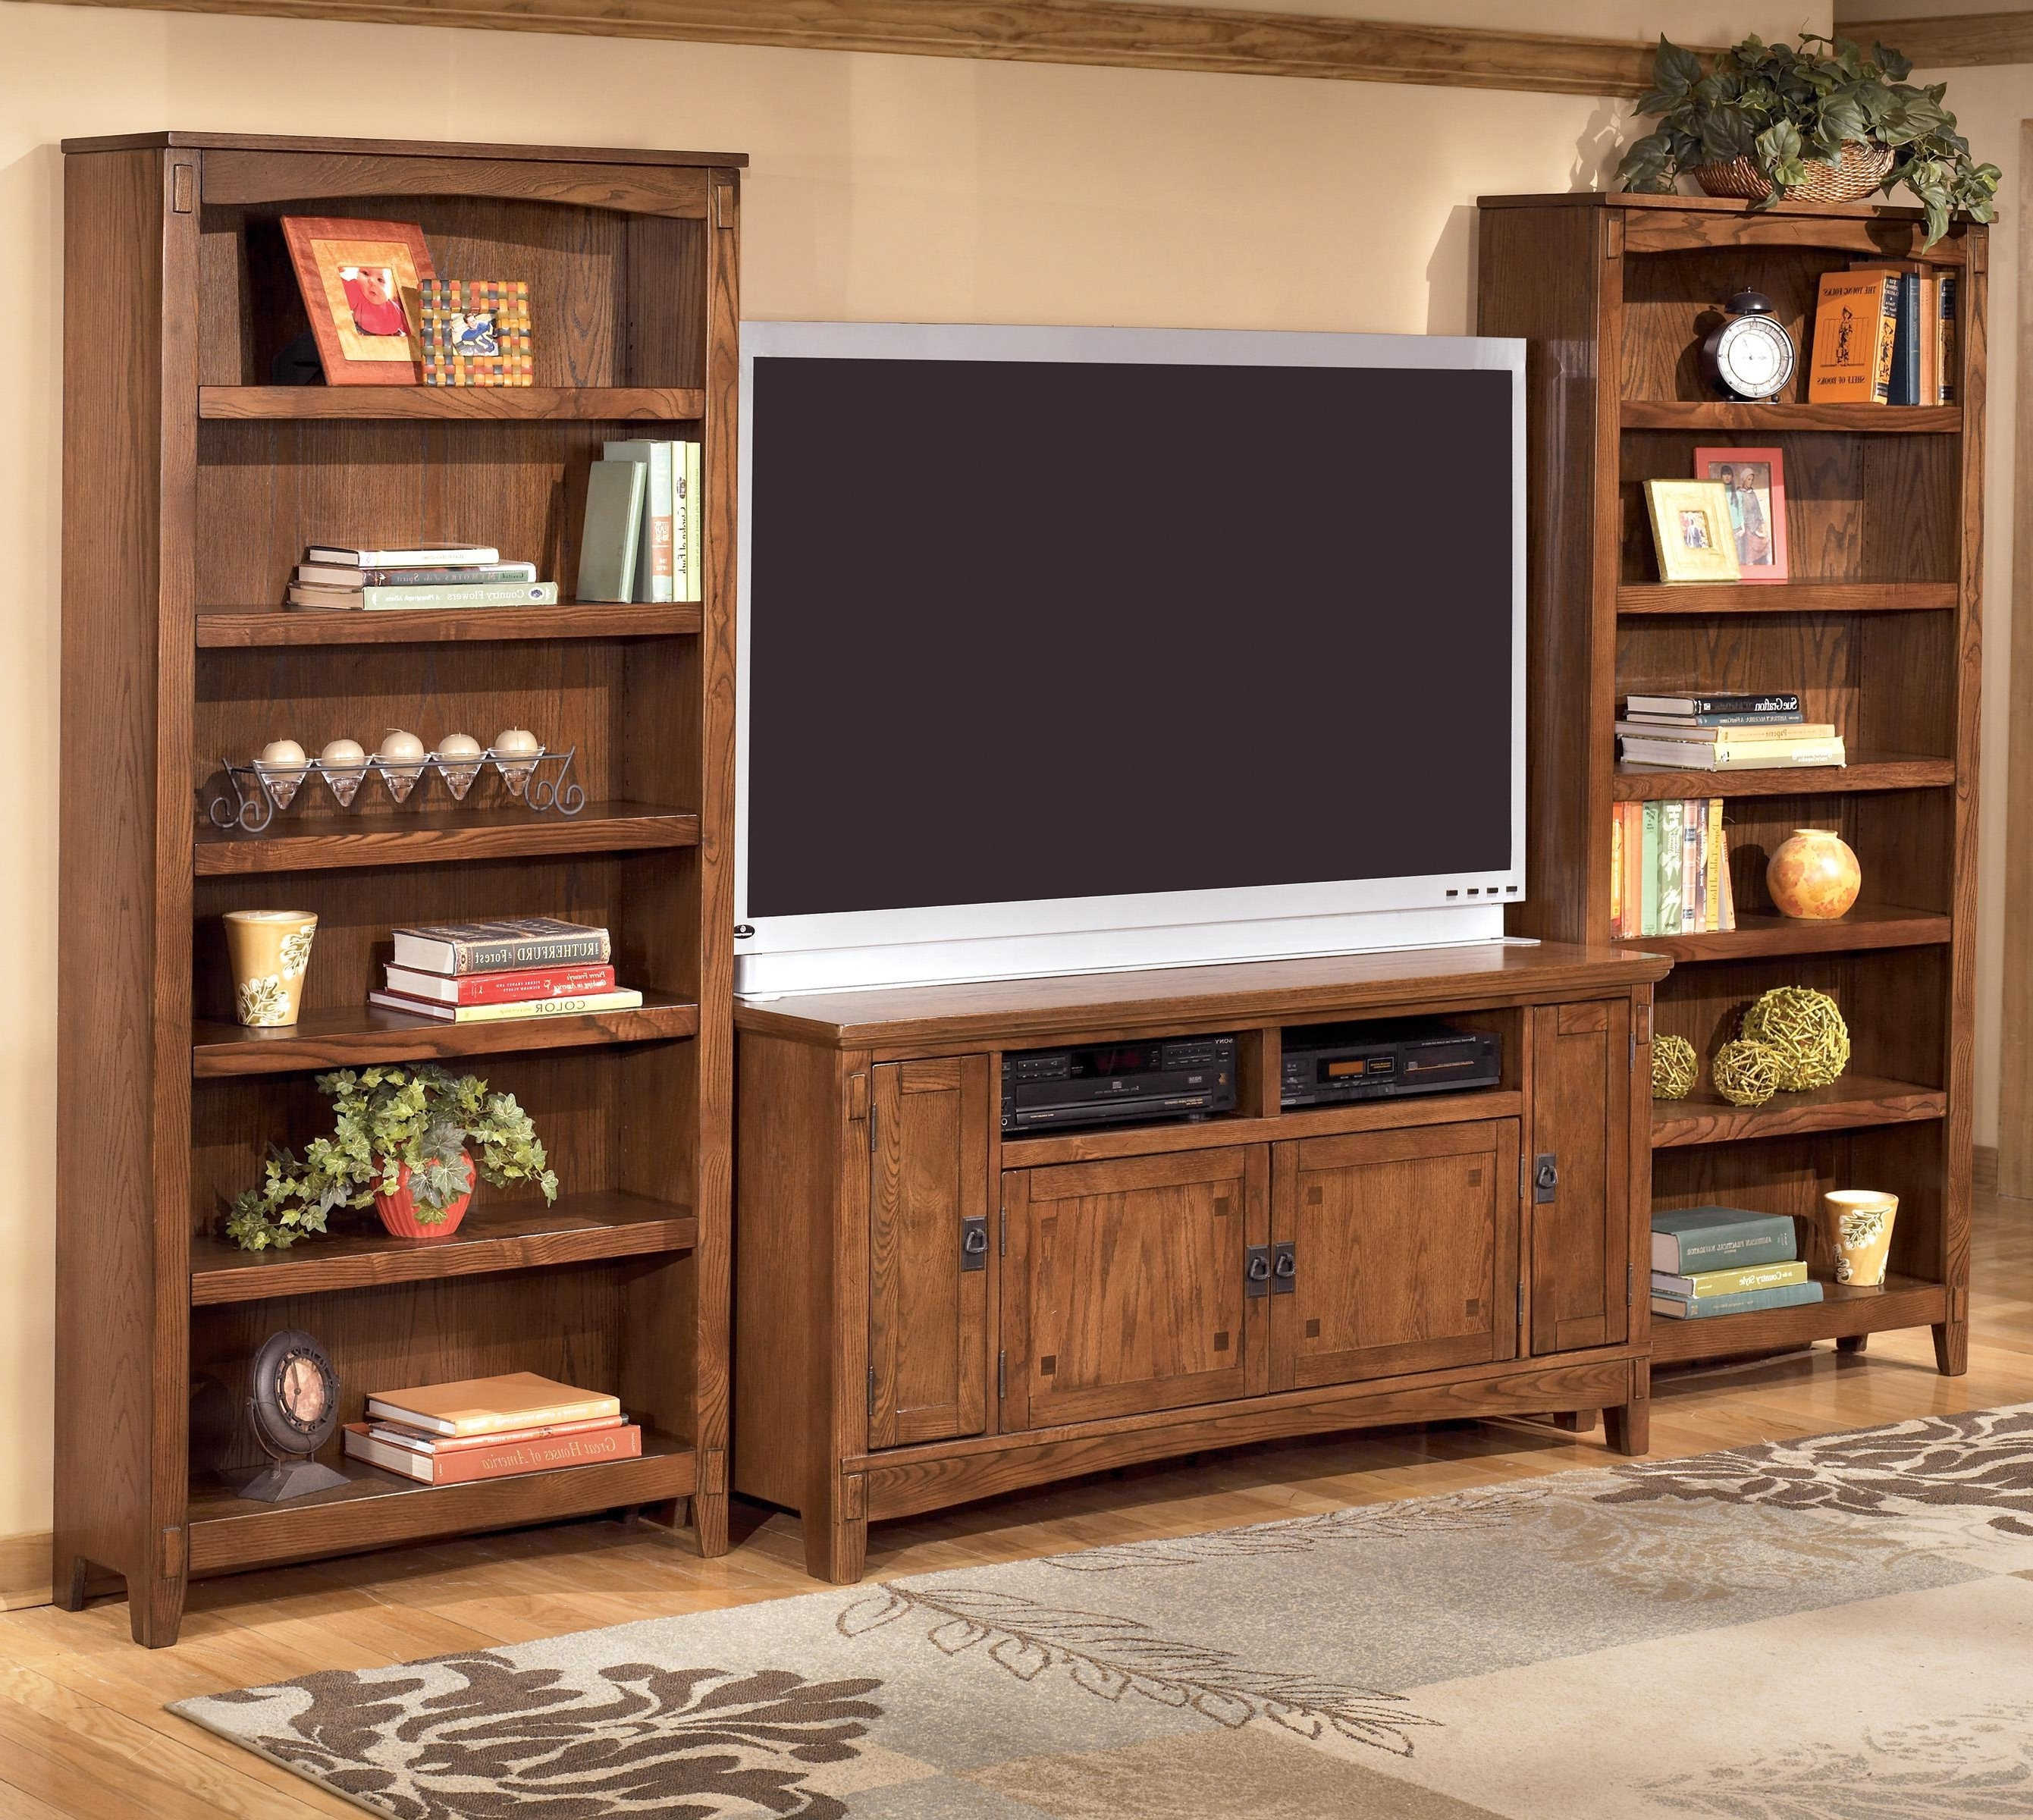 Well Known 60 Inch Tv Stand & 2 Large Bookcasesashley Furniture (View 14 of 15)